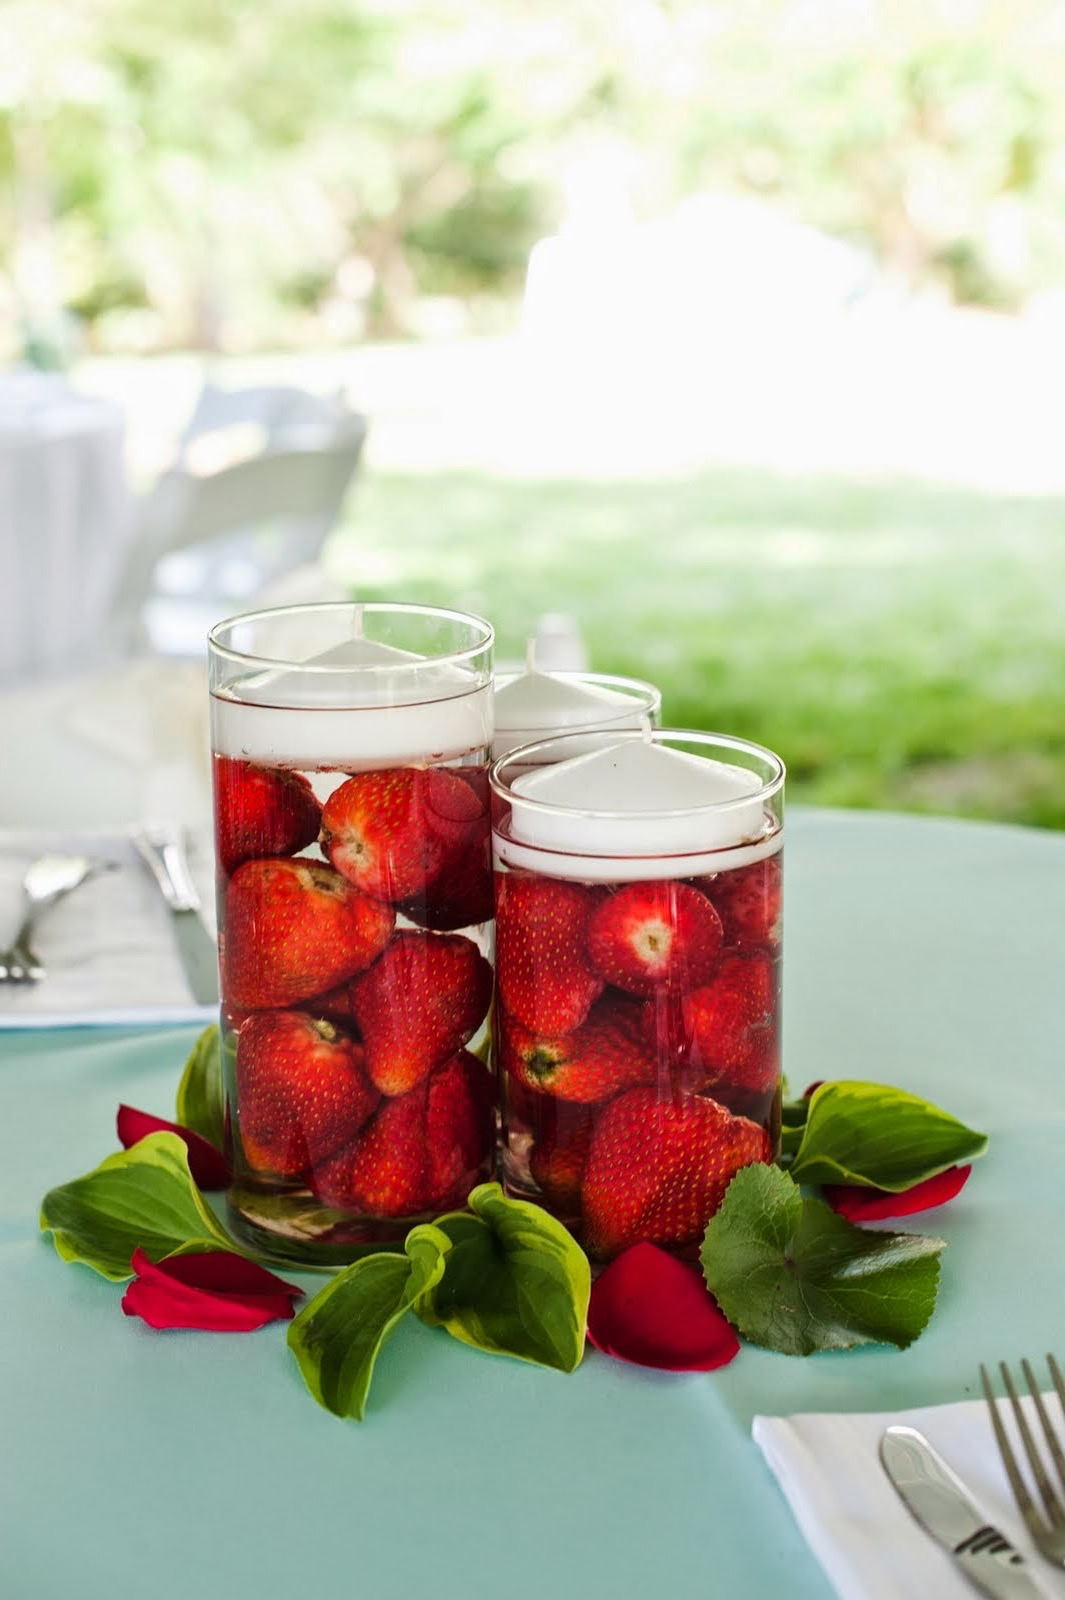 Low Budget Fruits Candle Centerpieces And Accessories For Wedding (Image 12 of 12)